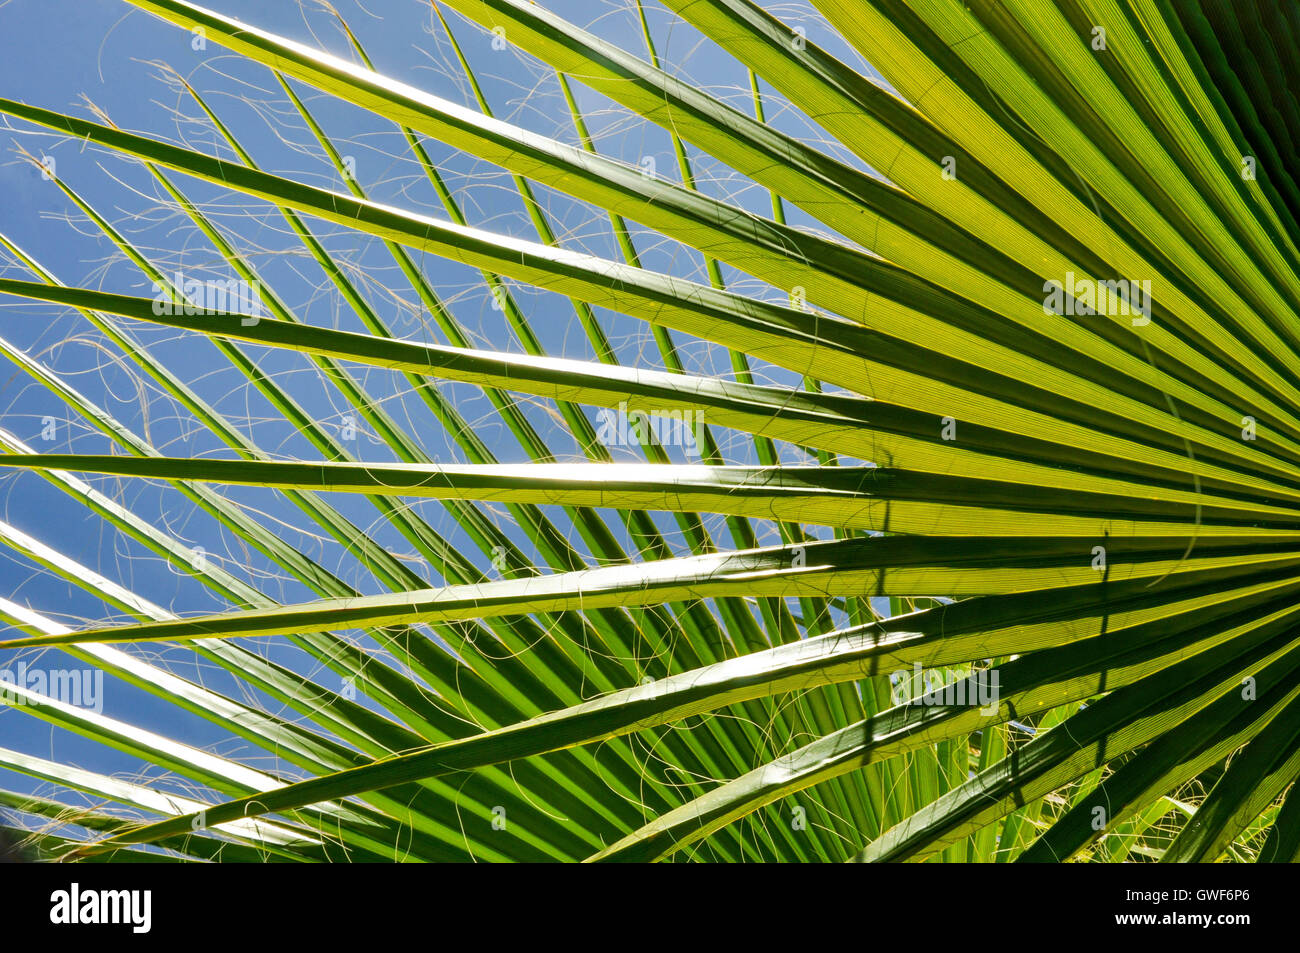 Abstract closeup of green radiating foliage of a tropical fan palm plant in Western Australia with a blue sky background. - Stock Image